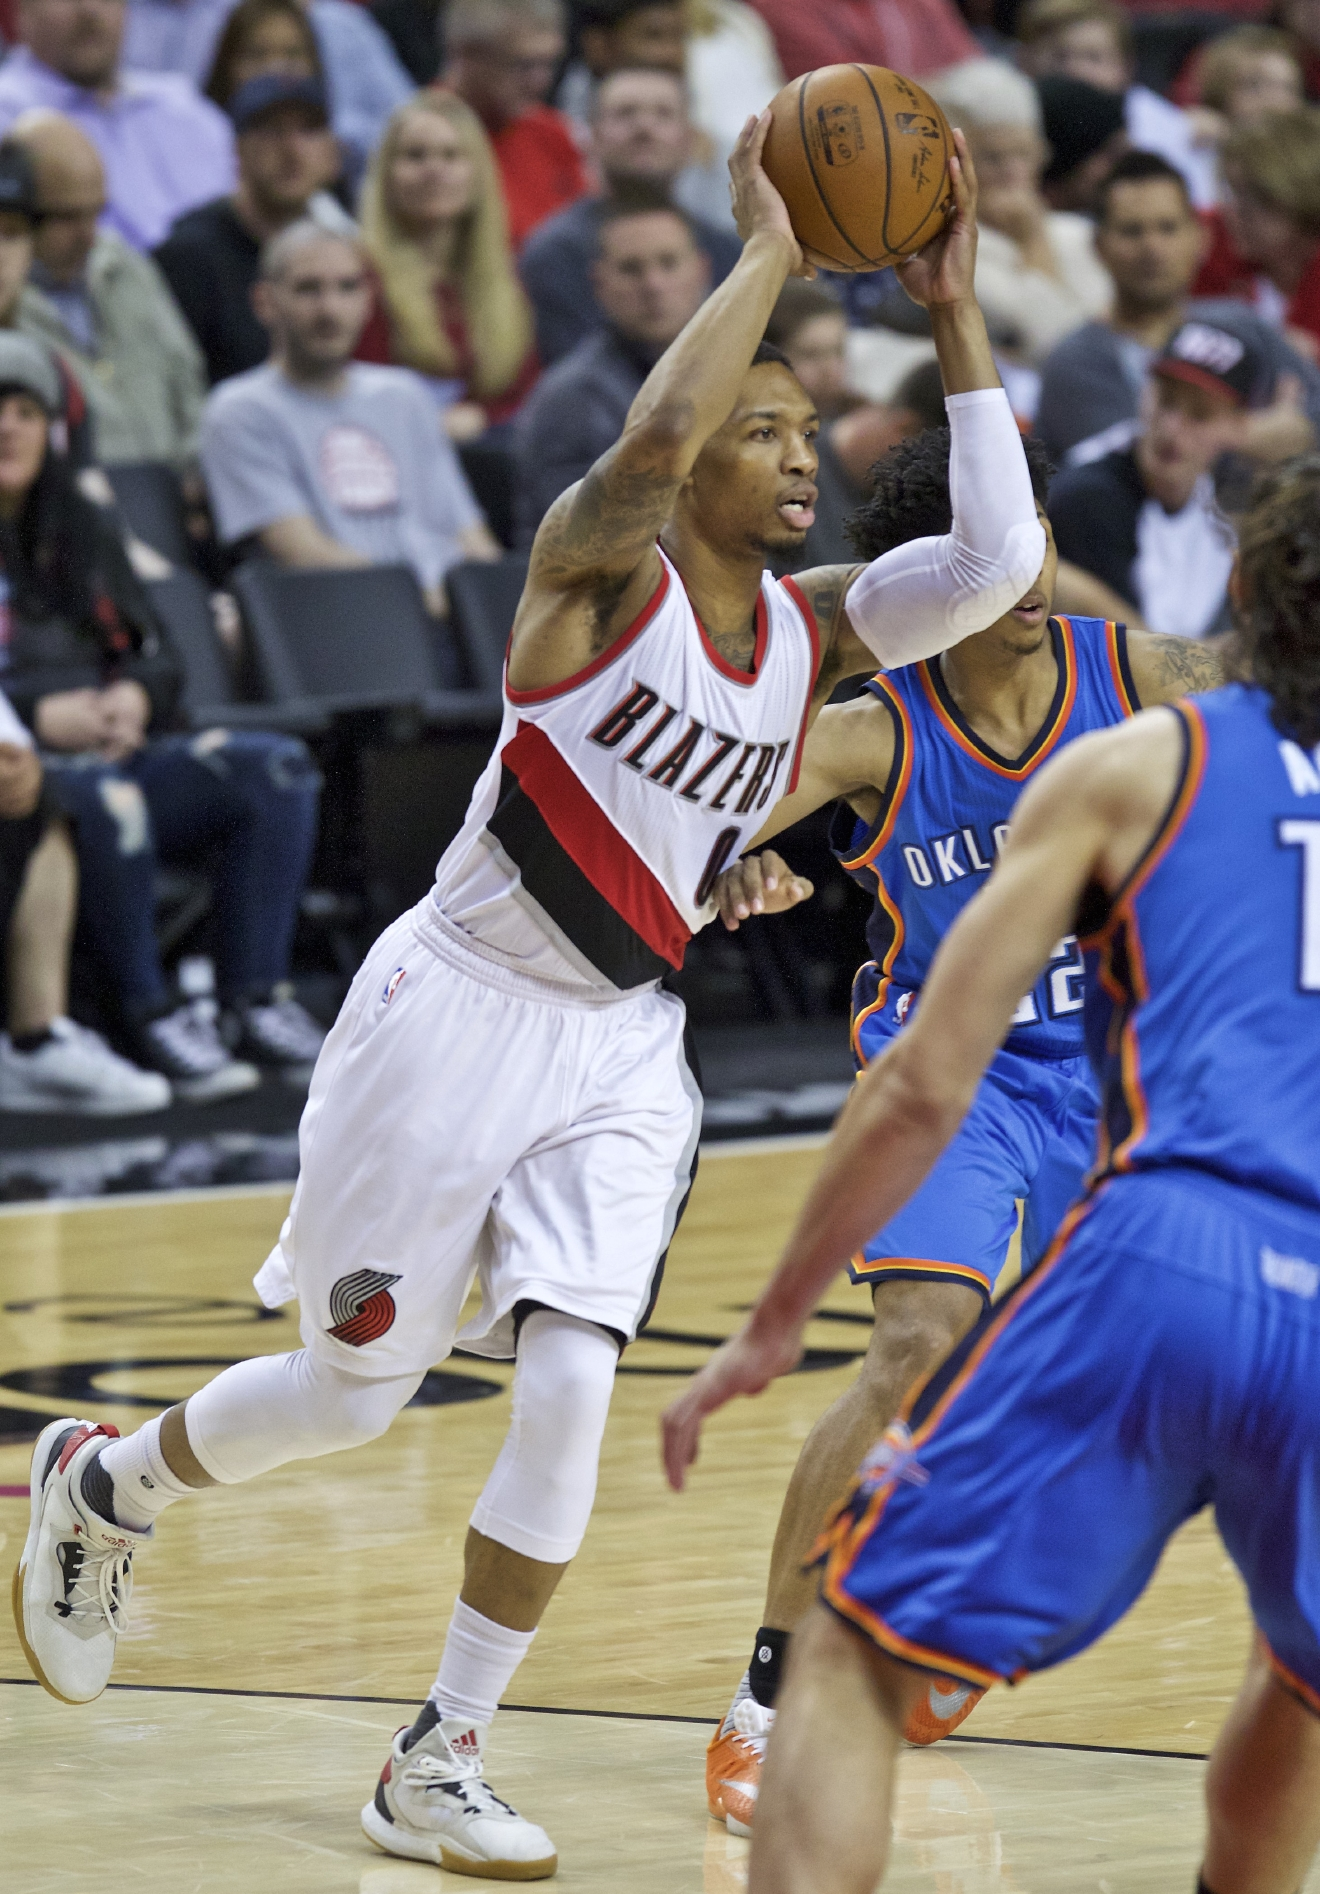 Portland Trail Blazers guard Damian Lillard, left, passes around Oklahoma City Thunder guard Cameron Payne, right, during the second half of an NBA basketball game in Portland, Ore., Wednesday, April 6, 2016. (AP Photo/Craig Mitchelldyer)